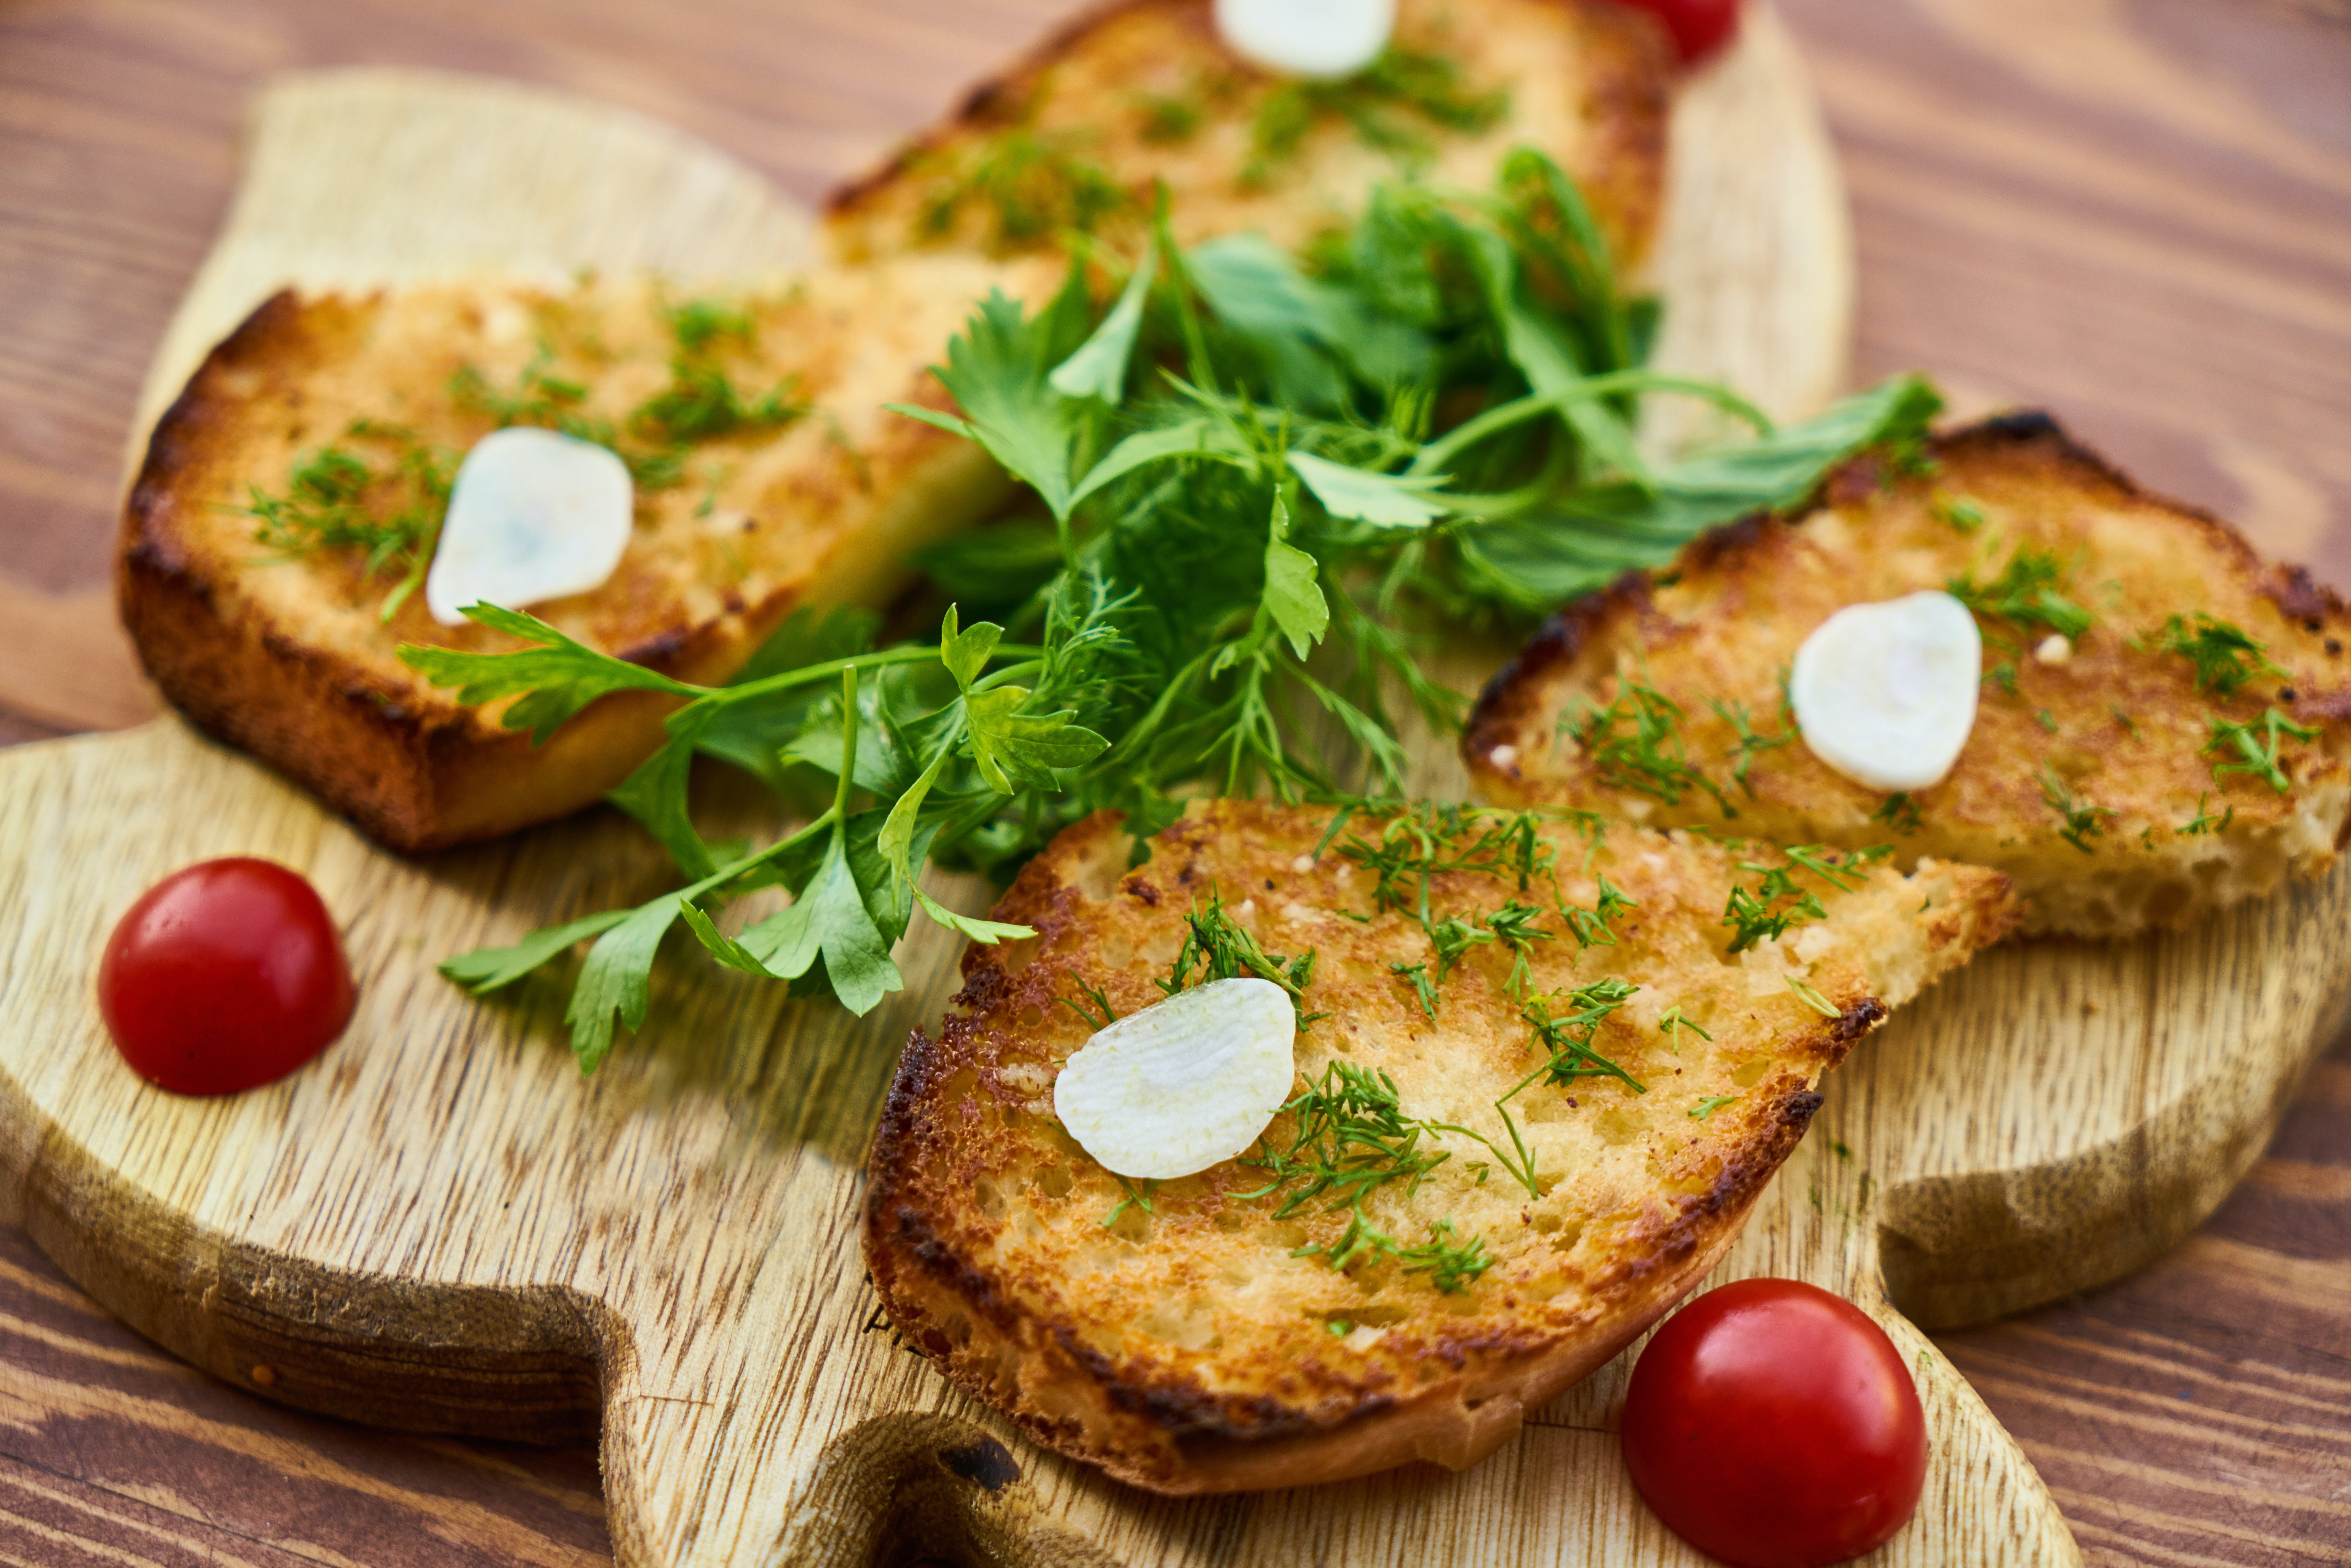 Toasted Bread And Herbs